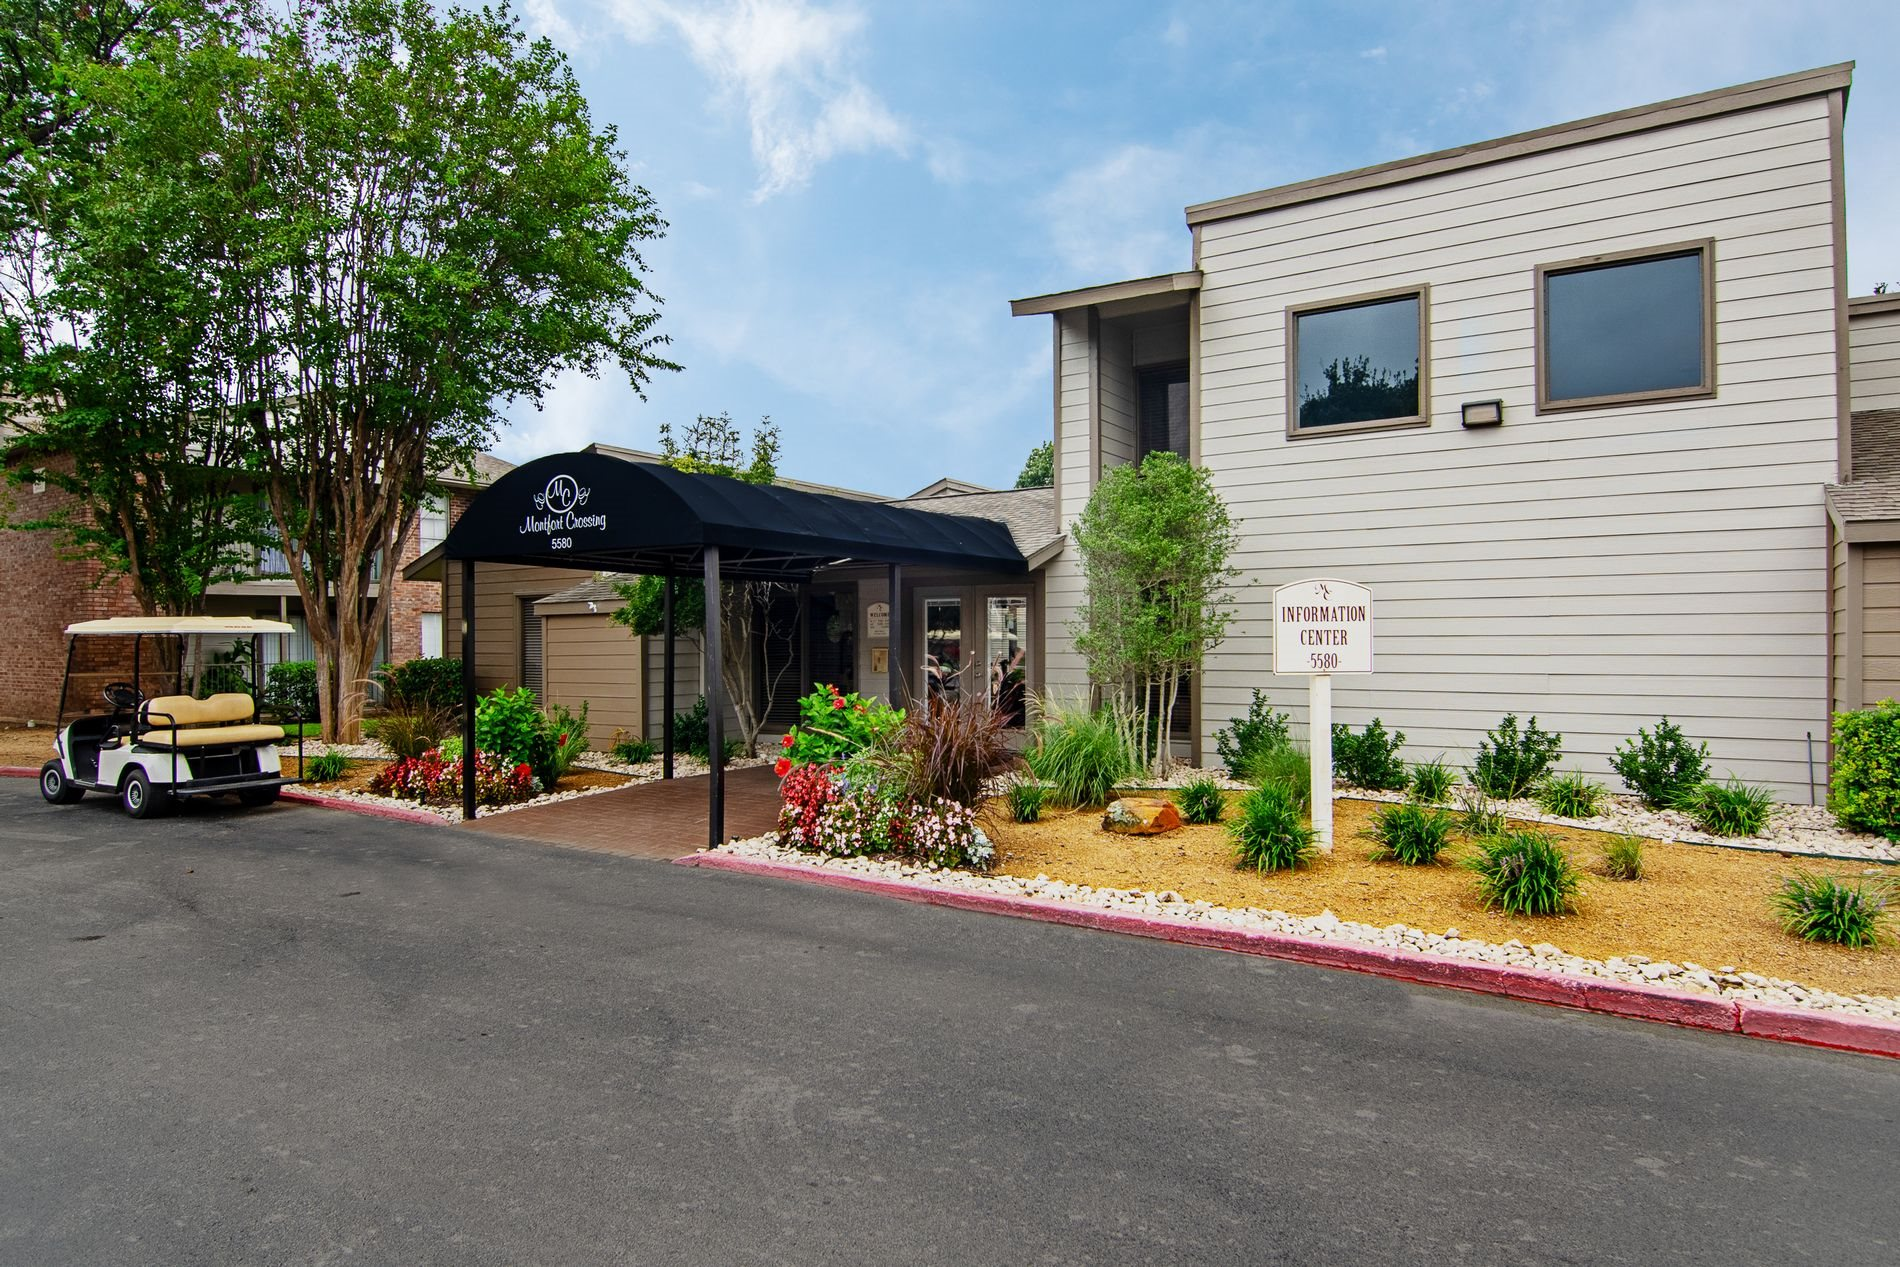 Leasing Office Exterior at Montfort Crossing Apartments in Dallas, Texas, TX